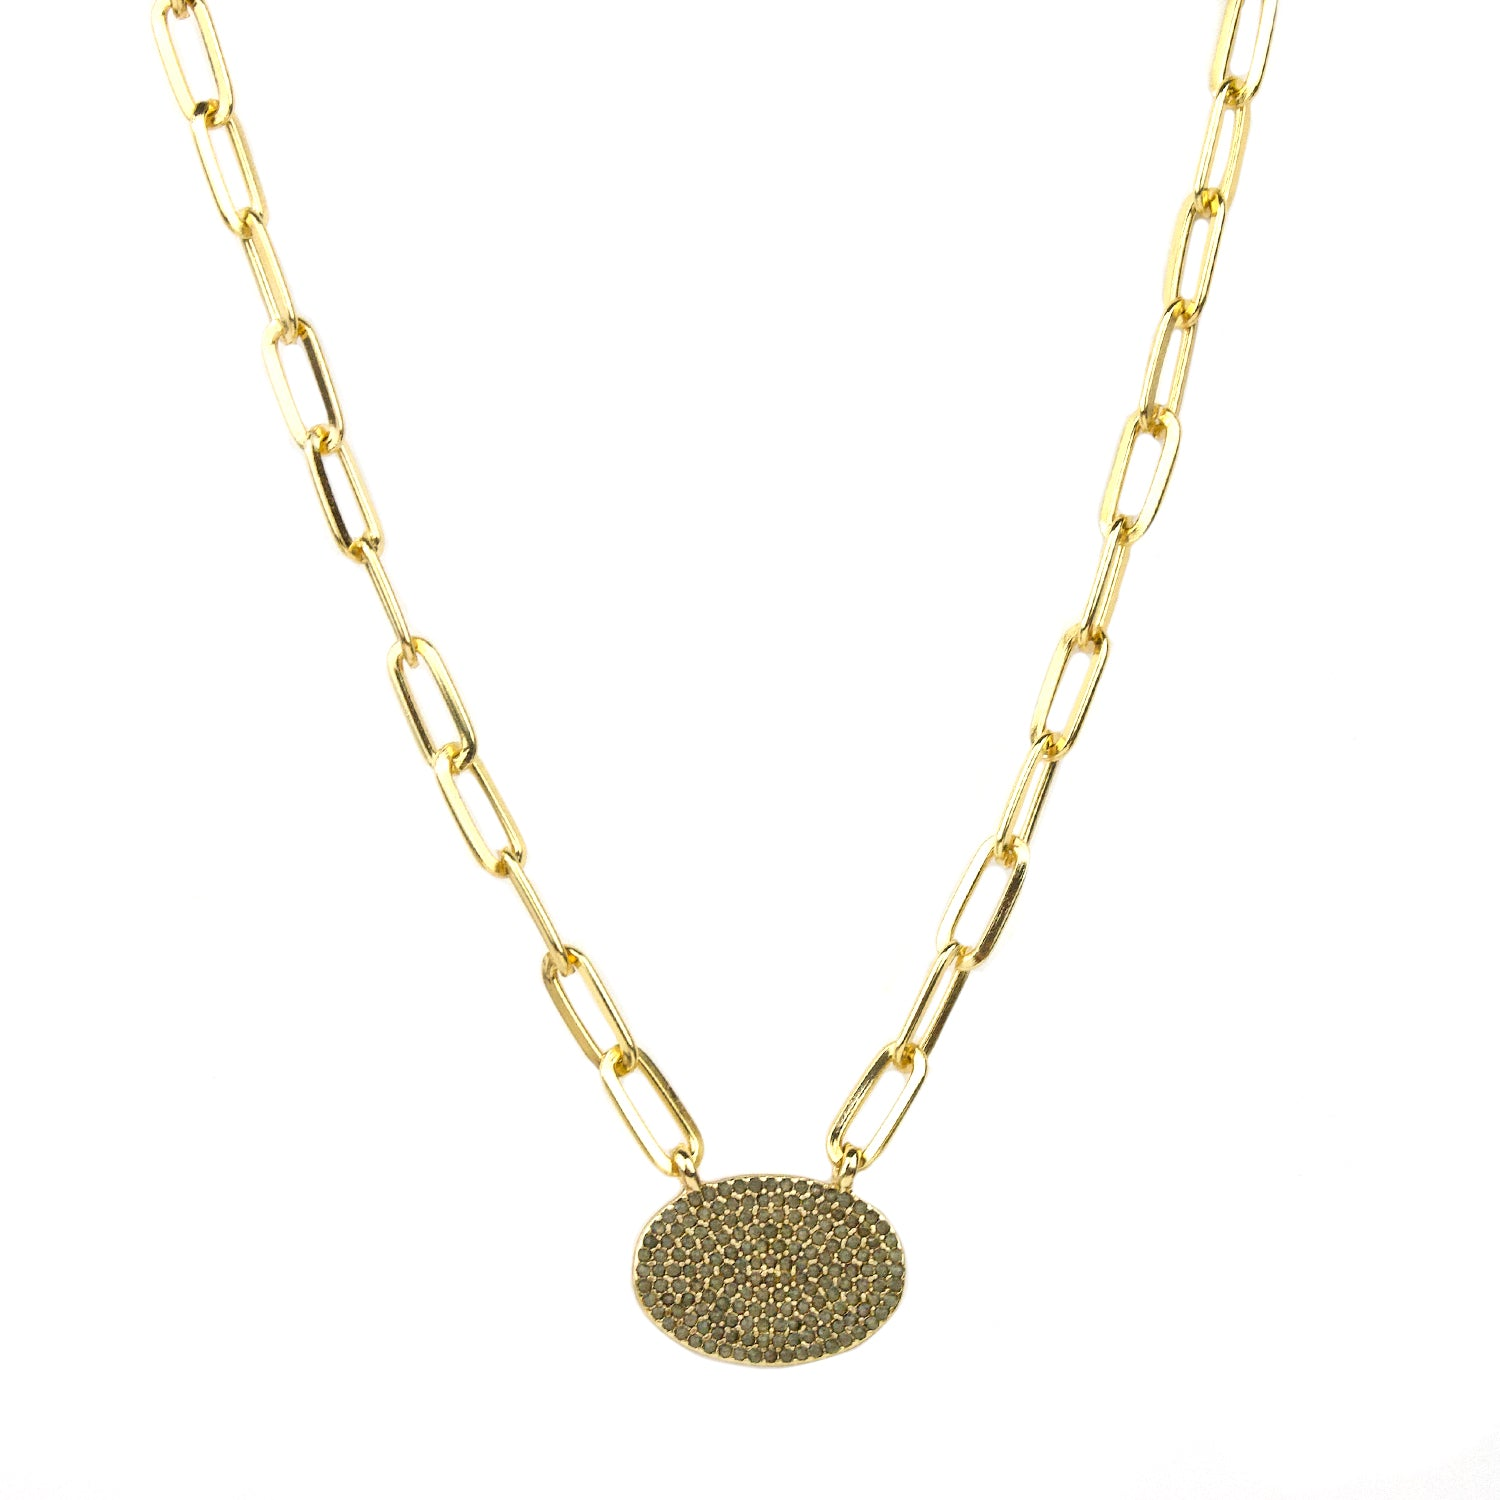 "Marlyn Schiff - 16"" Chain Link with Oval Charm Necklace"